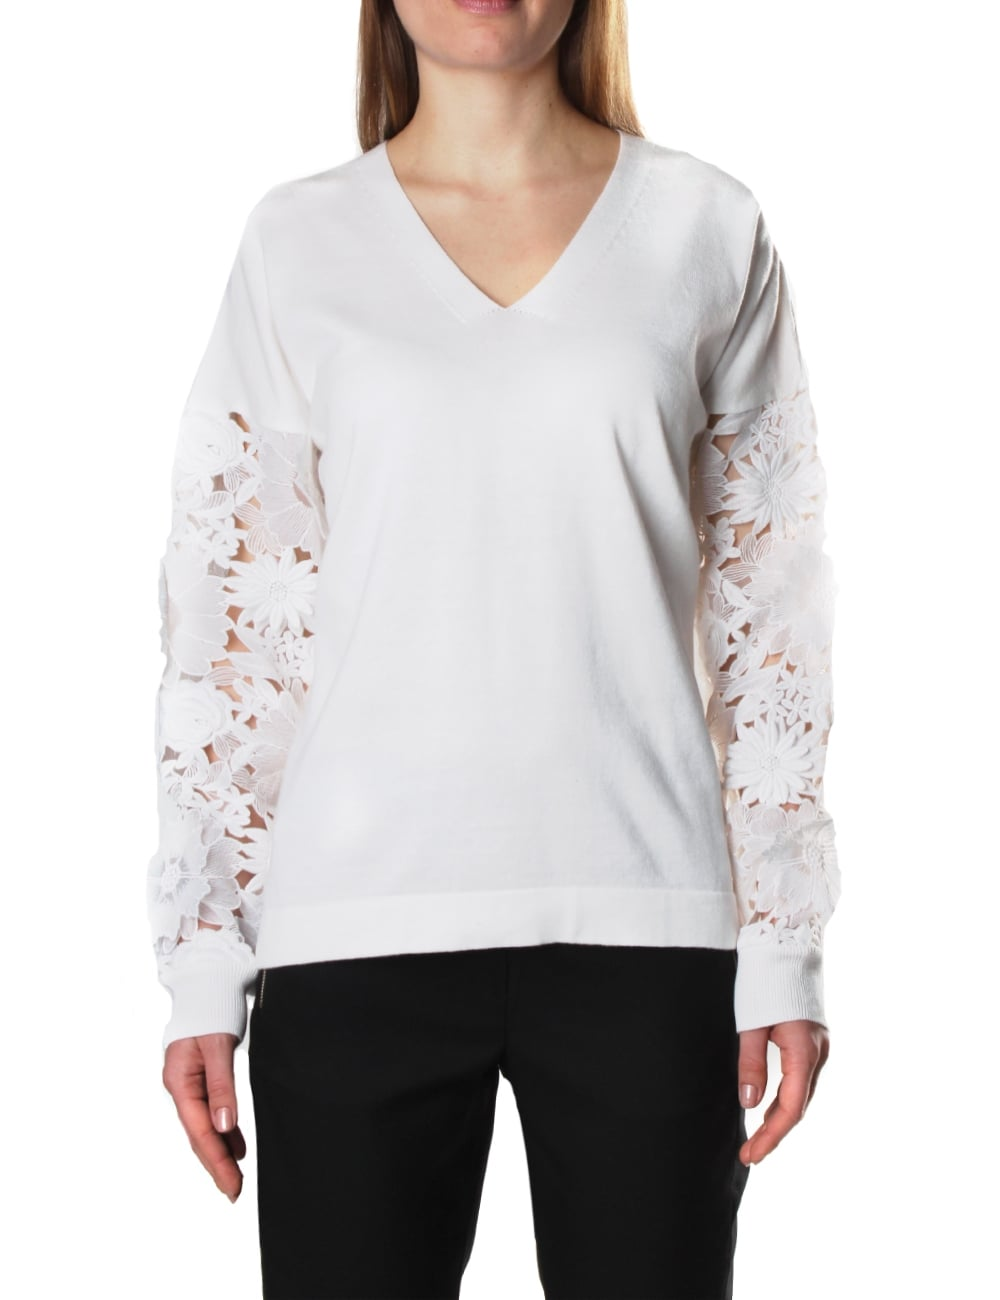 0e5e46a93fb49 French Connection Manzoni 3D Floral Laced Sleeve Women's Jumper